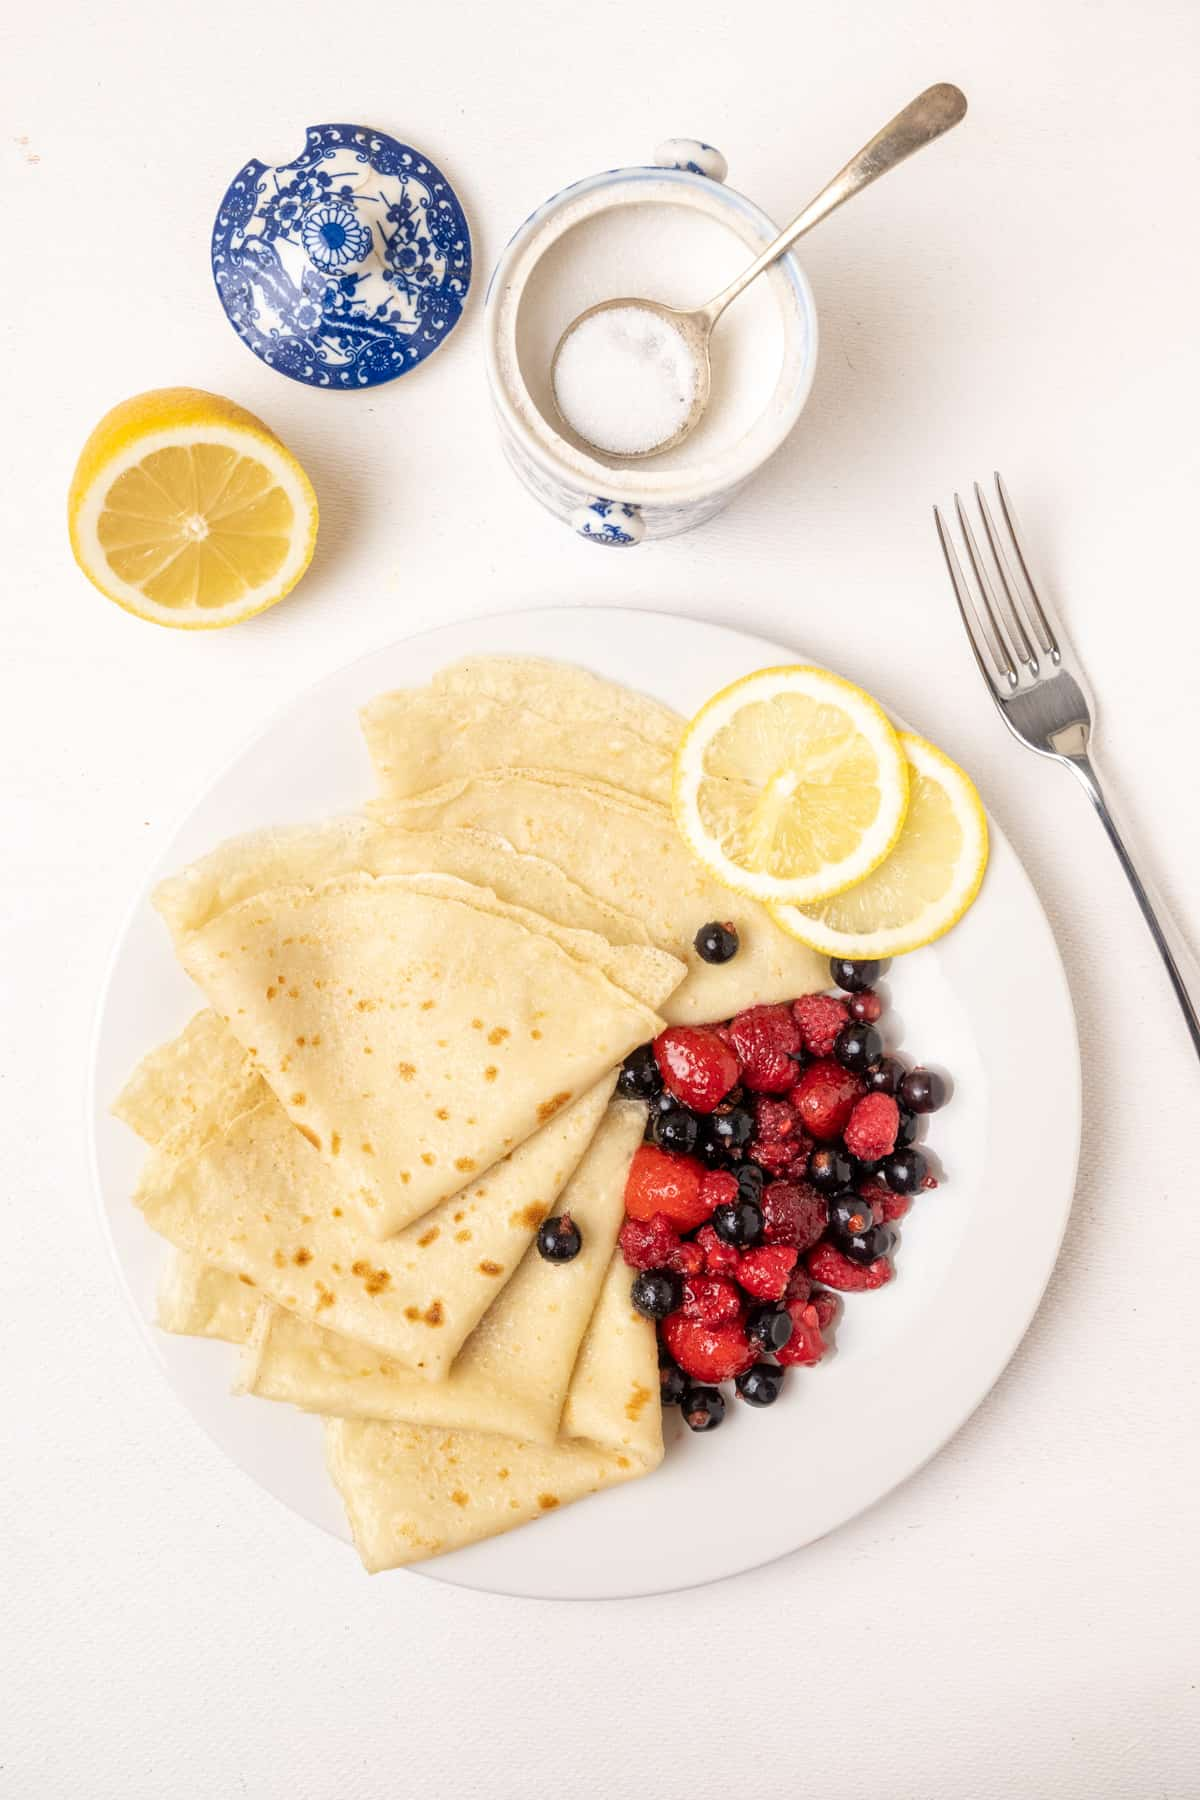 A plate of thin vegan pancakes with lemon and a sugar bowl next to it.